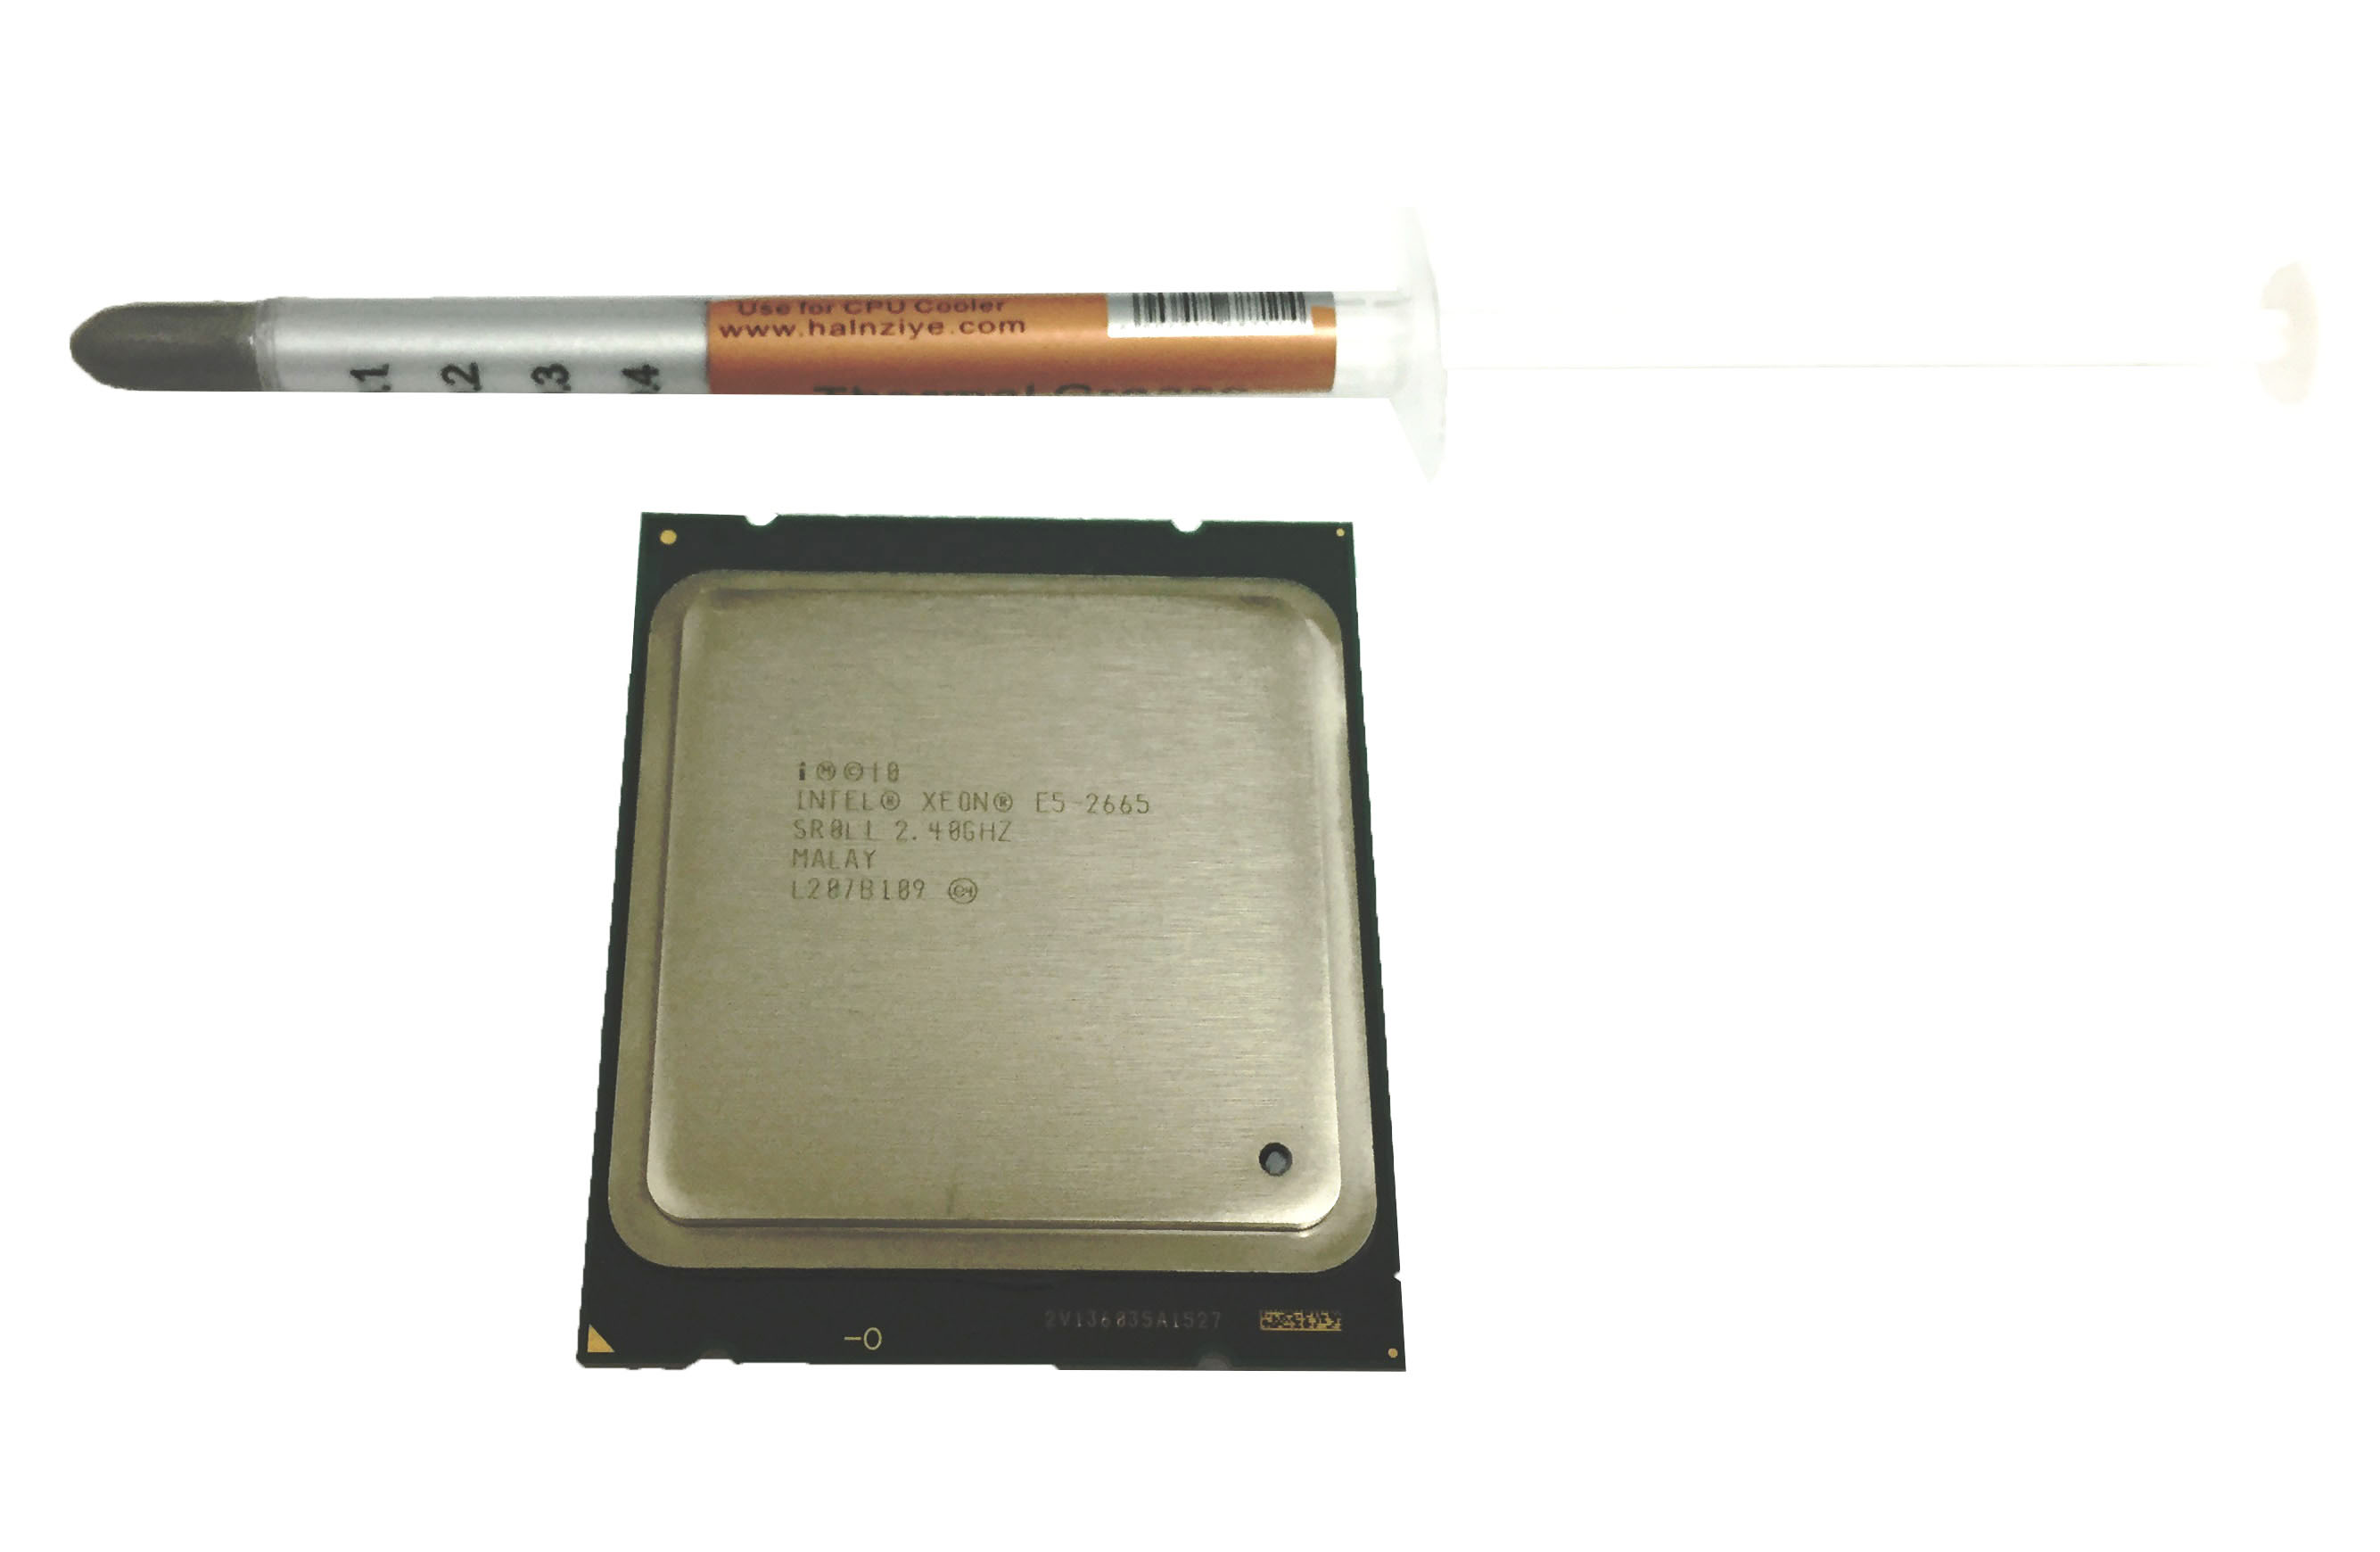 INTEL XEON E5-2665 8 CORE 2.4GHZ 20MB LGA 2011 PROCESSOR (SR0L1)